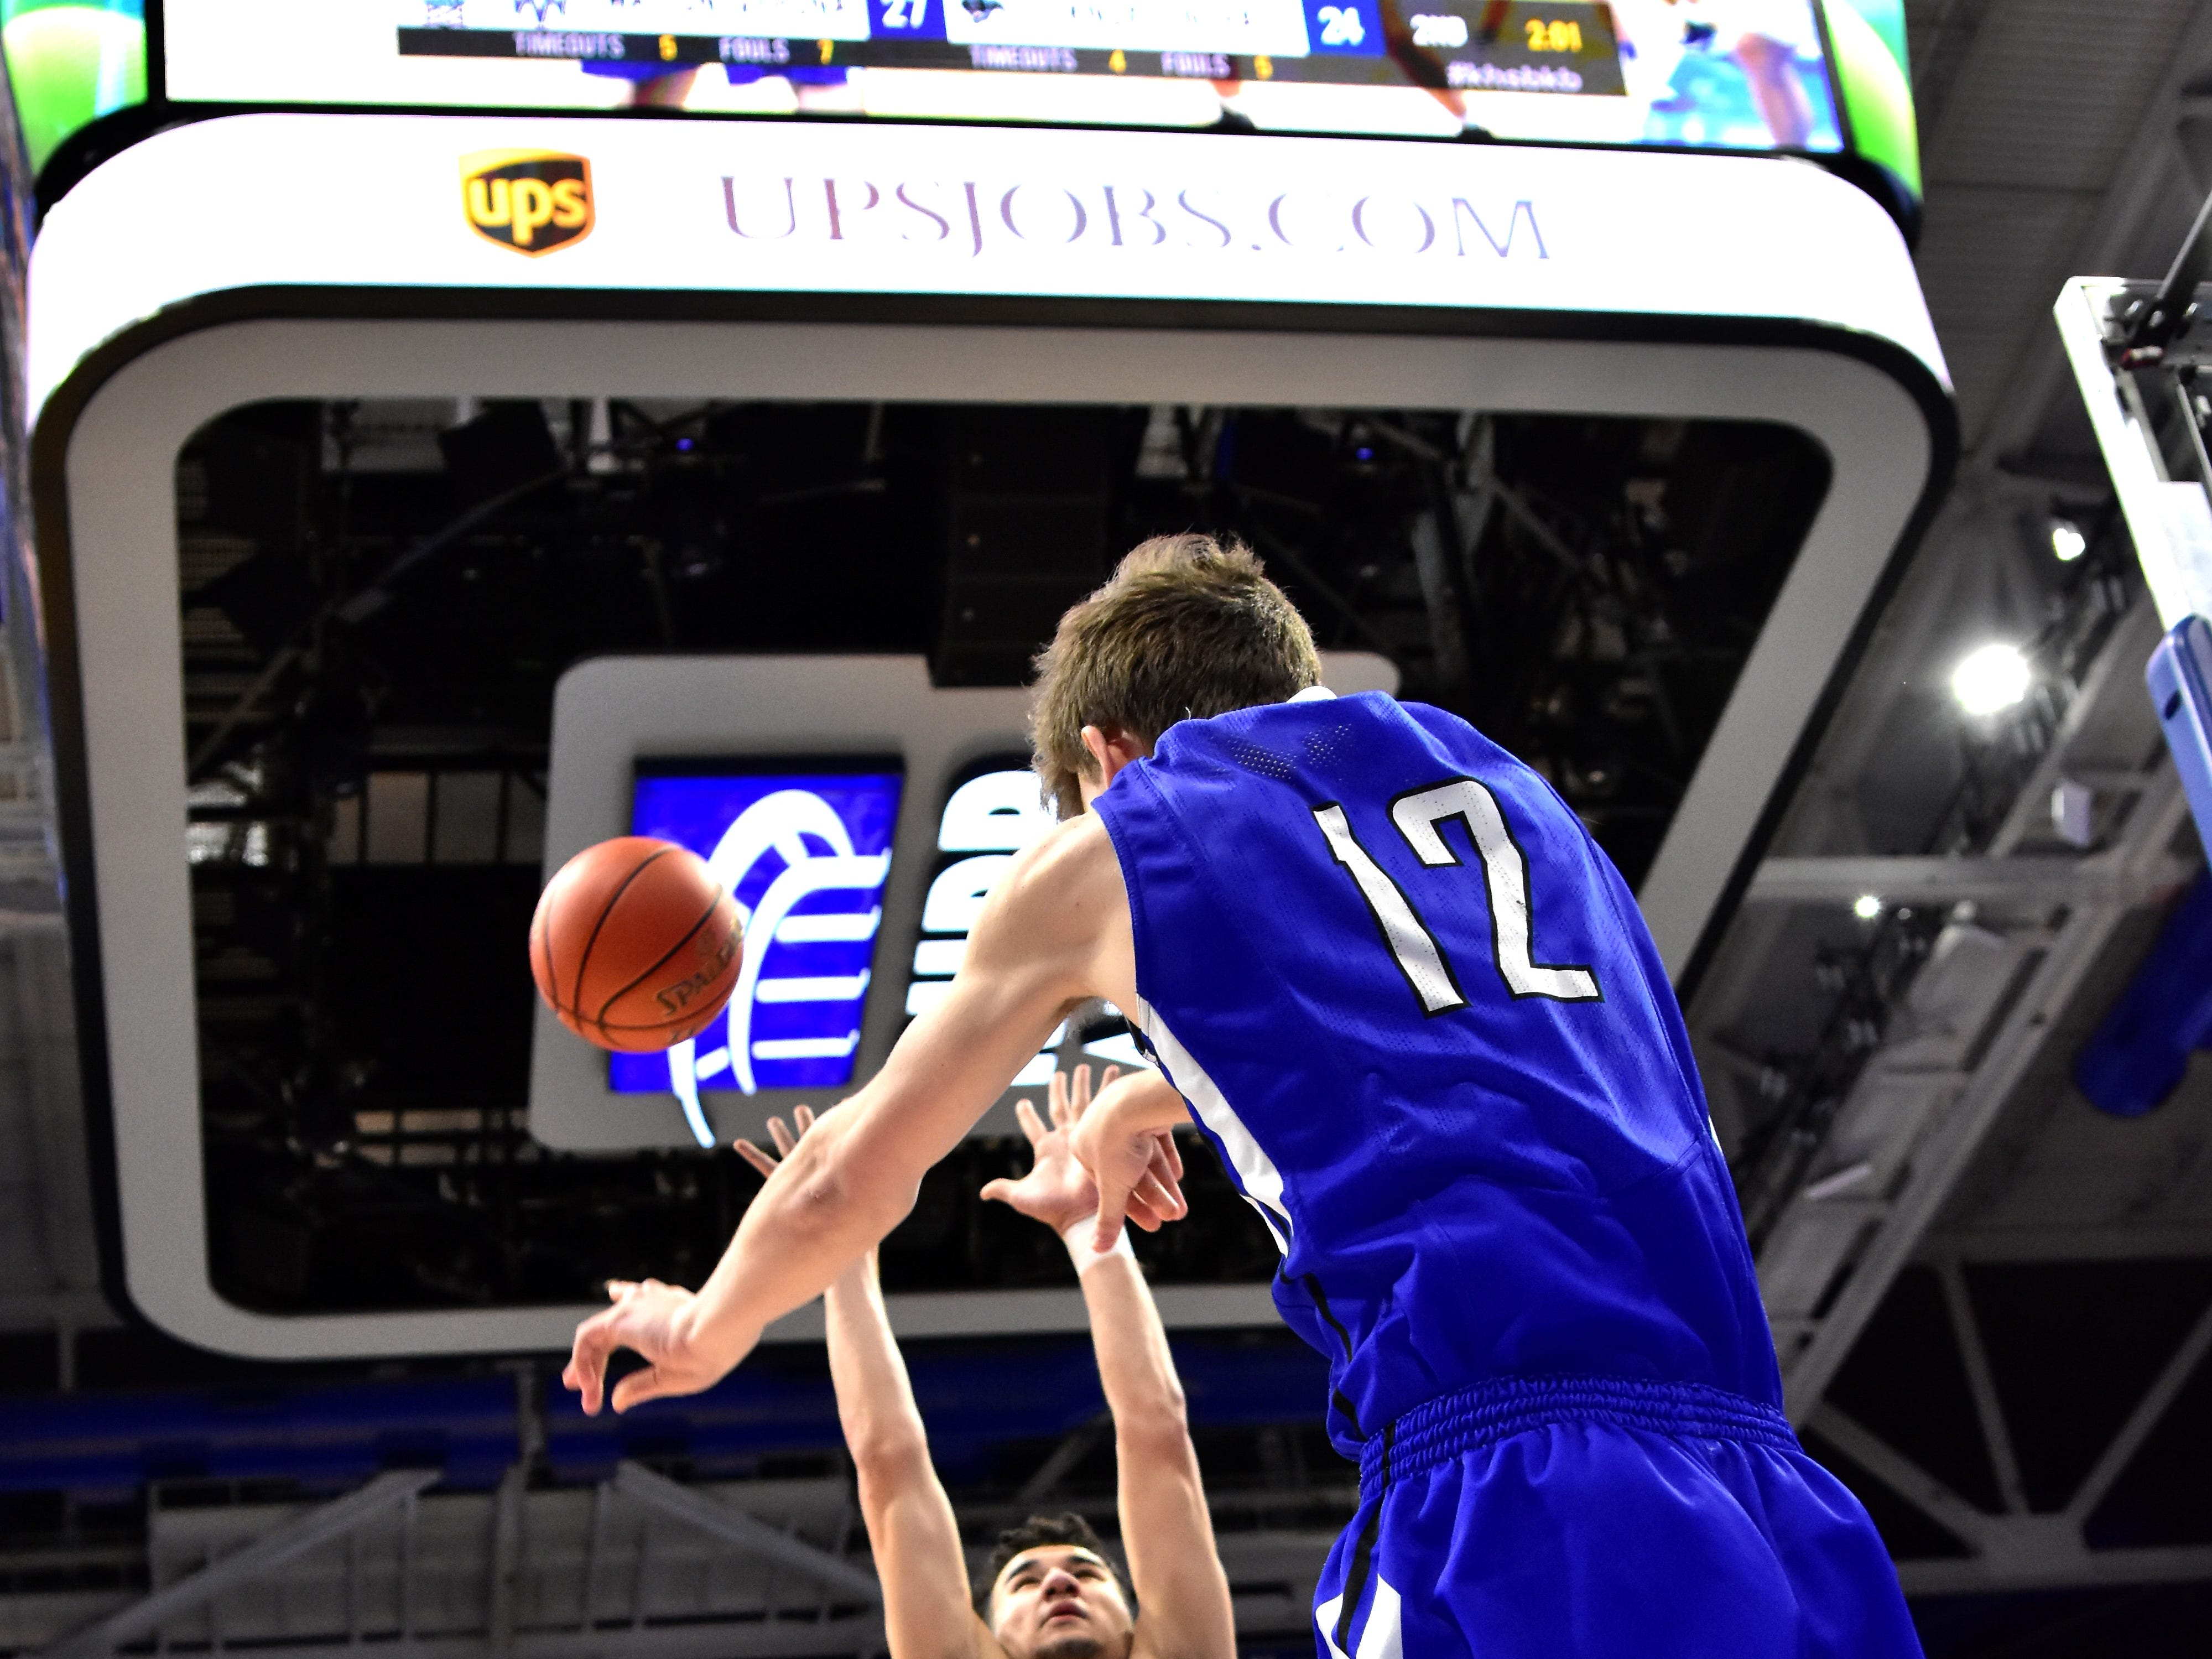 Walton Verona's Jack Watson lofts the ball inbounds from the baseline over the Knox Central defense at the KHSAA Sweet 16 Tournament at Rupp Arena in Lexington, KY, March 6, 2019